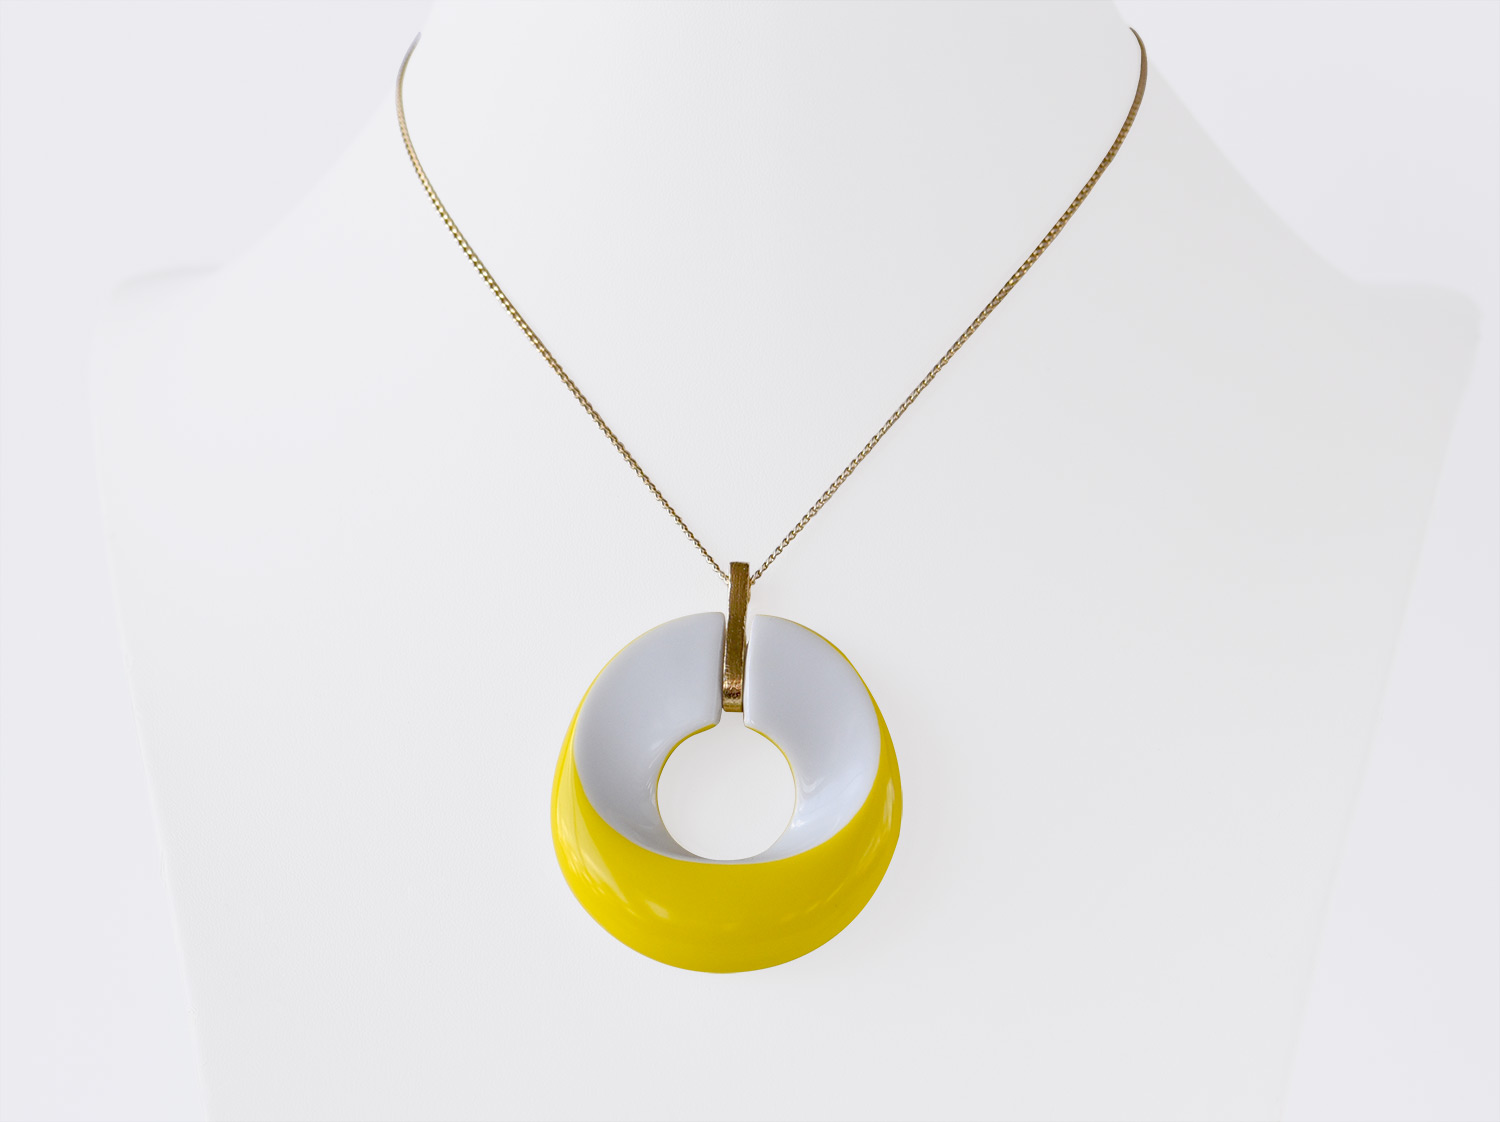 Pendentif Alba jaune en porcelaine de la collection ALBA JAUNE Bernardaud